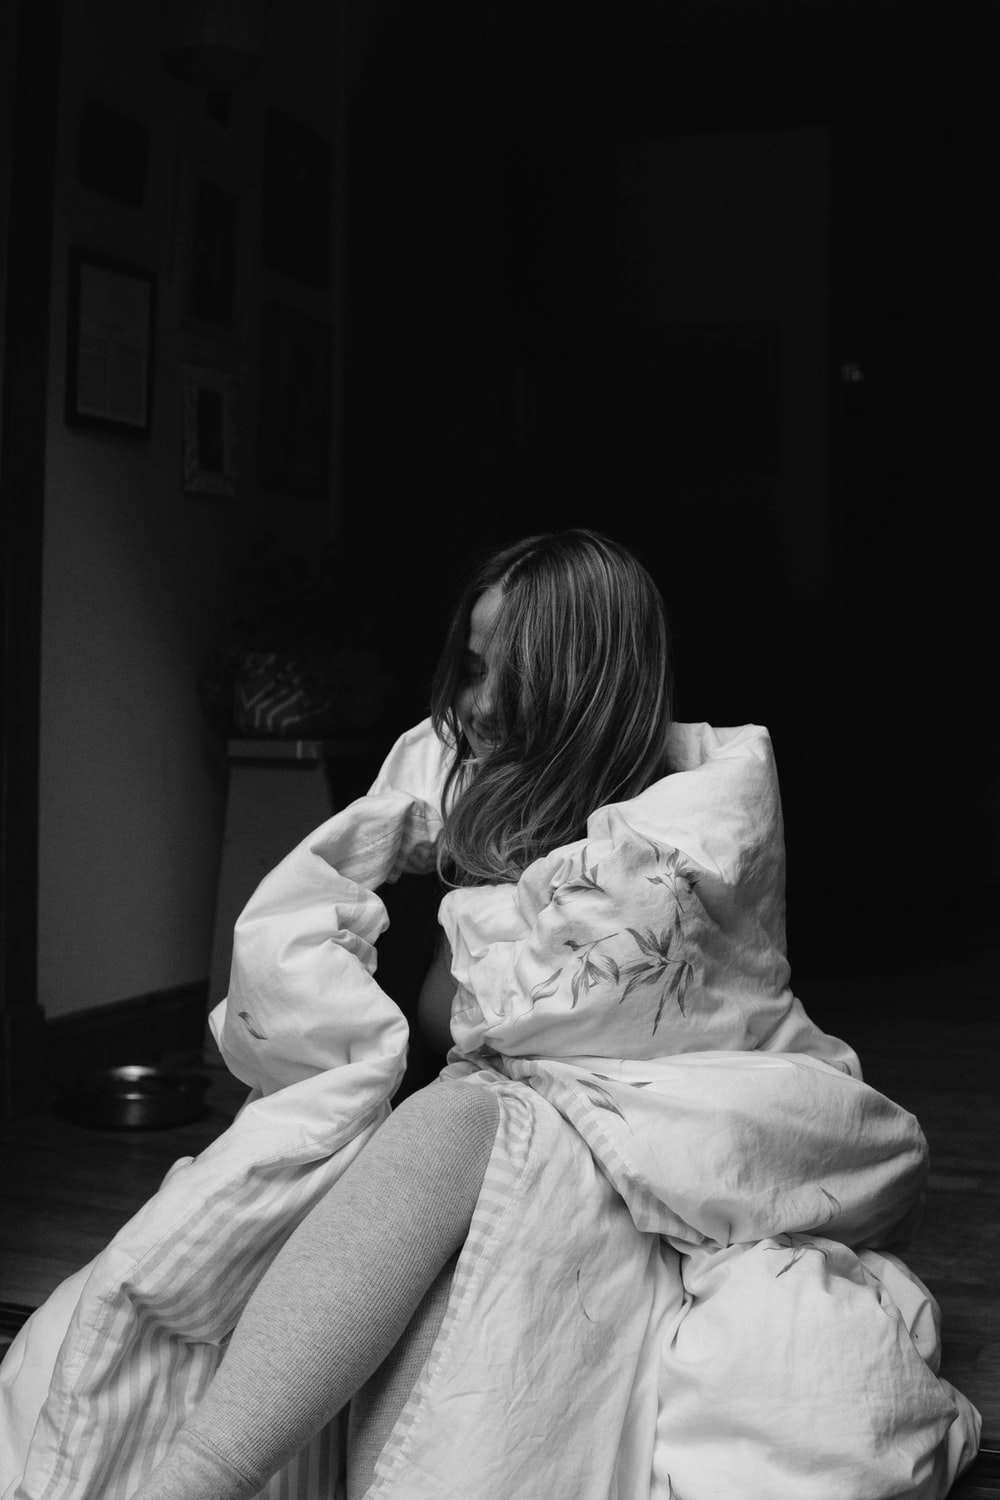 grayscale photo of woman in white hoodie sitting on chair